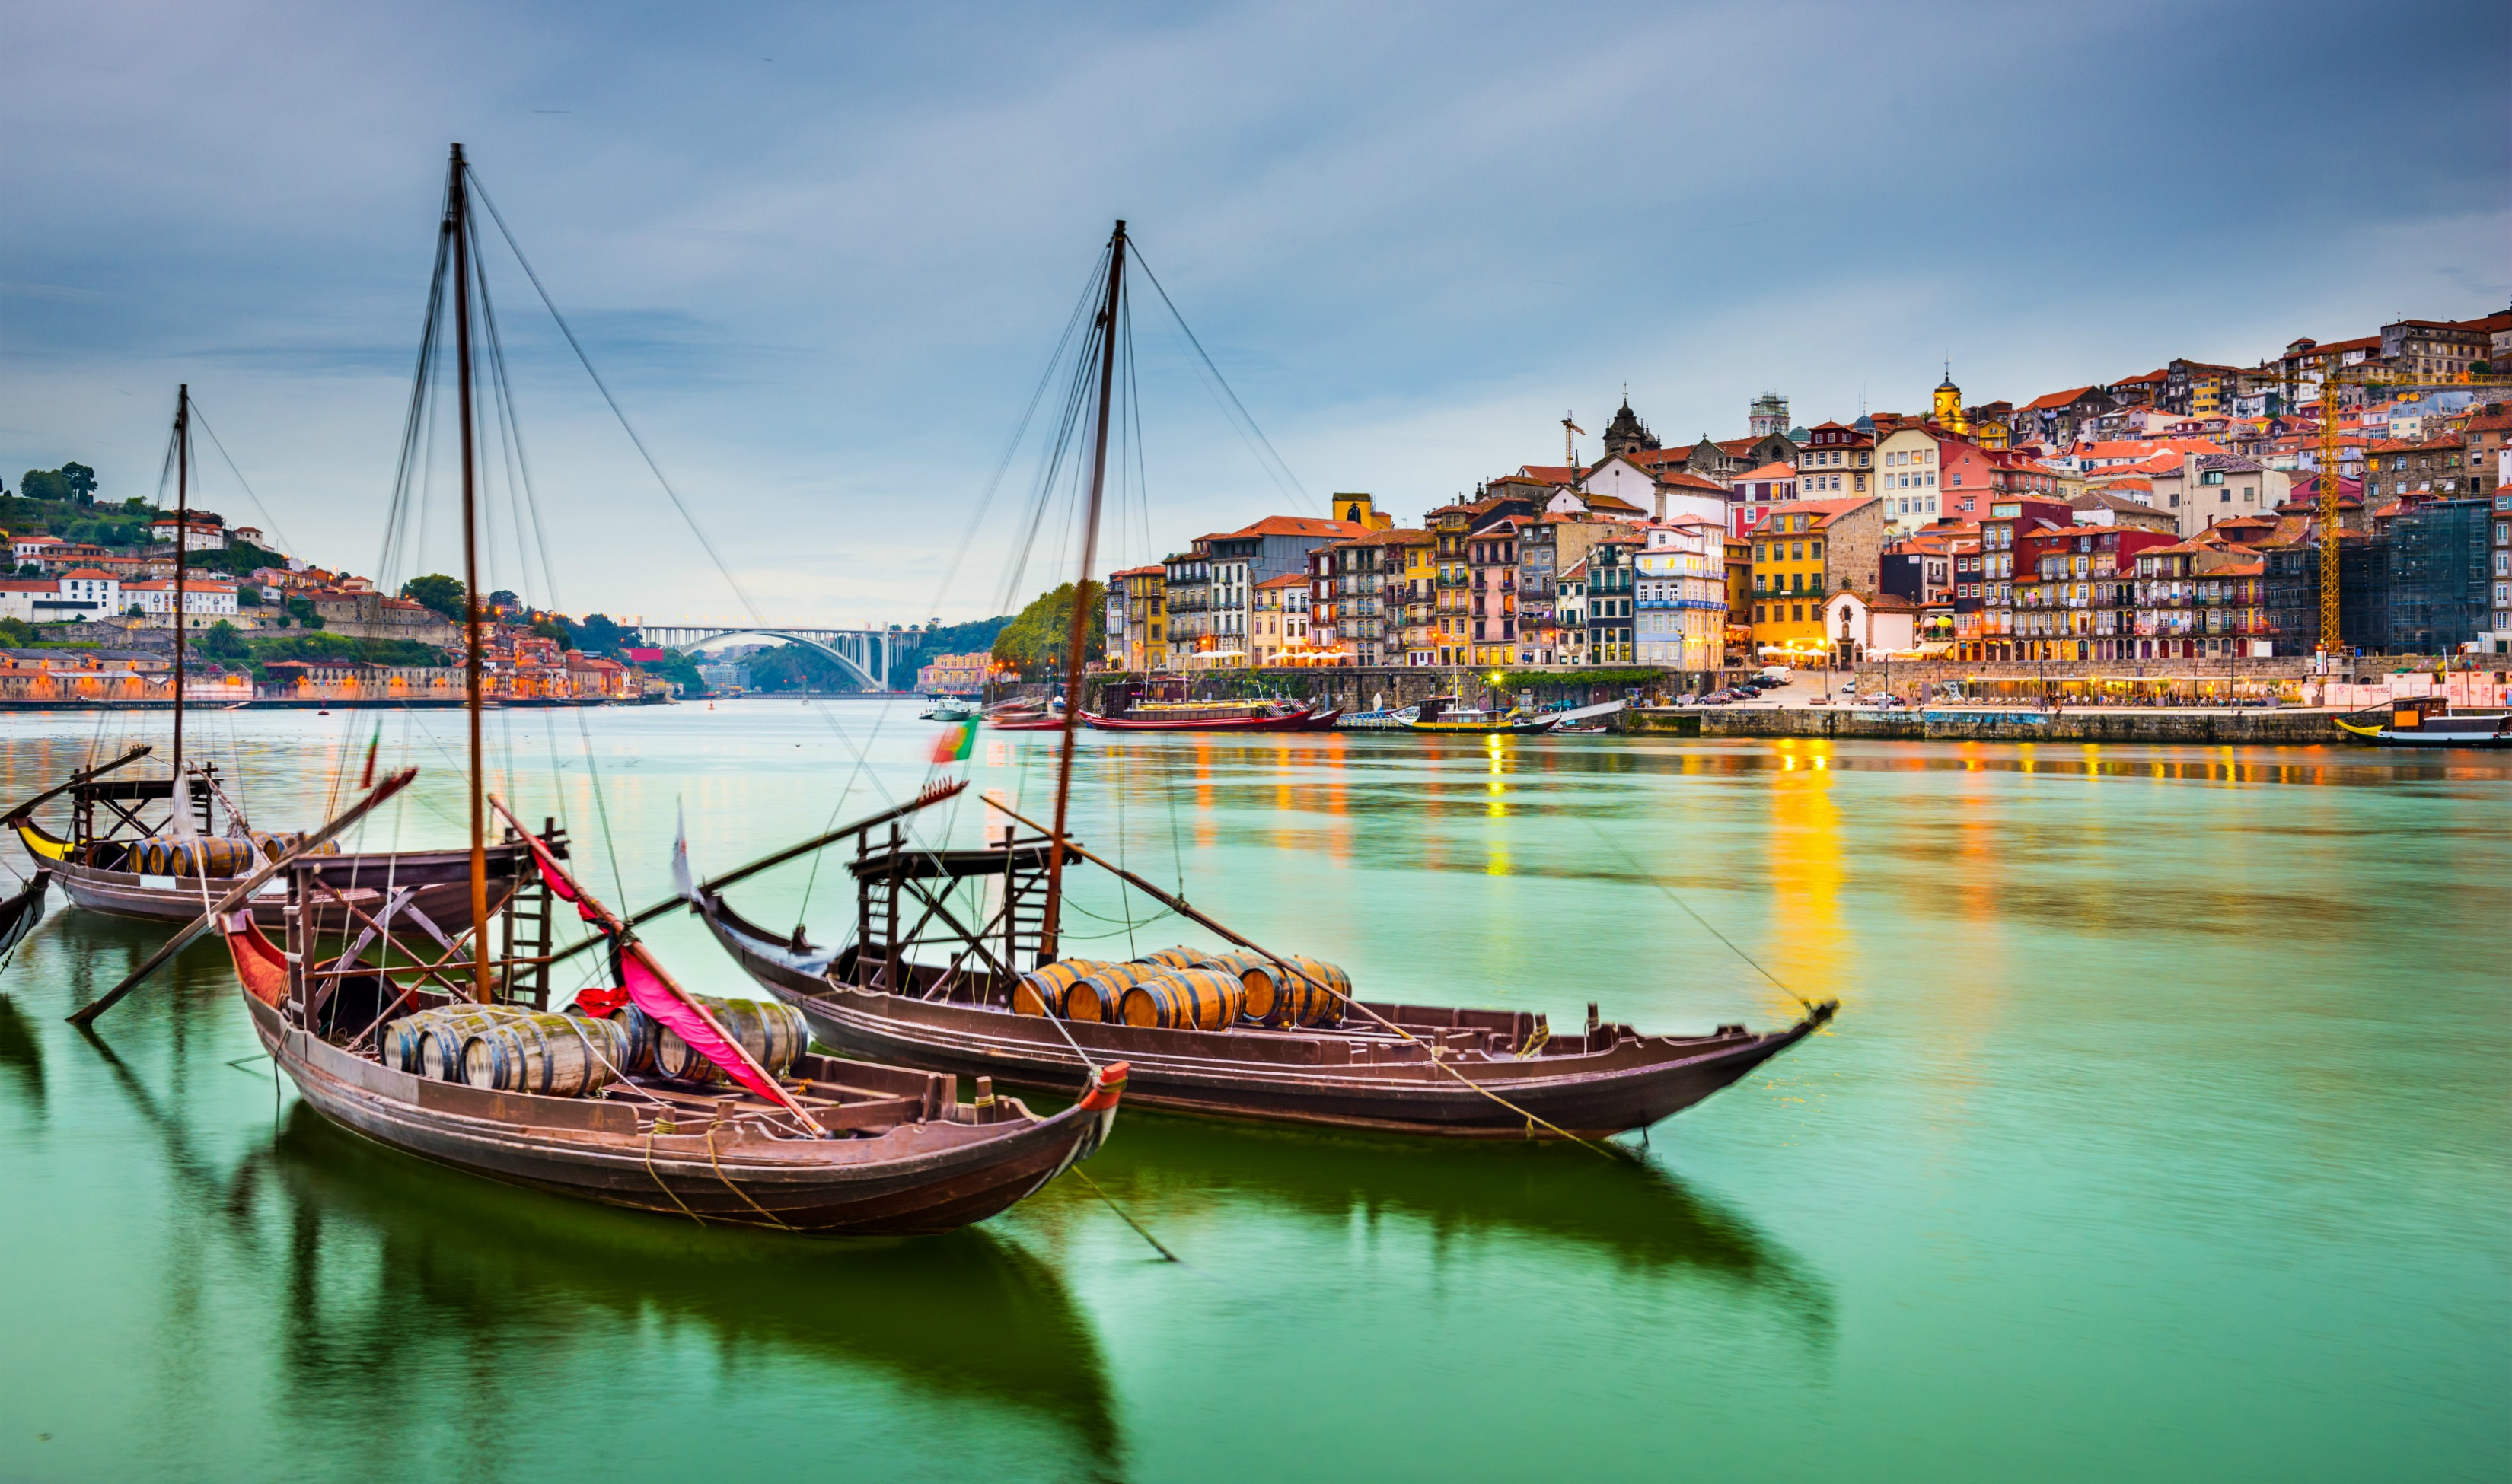 Porto travel guide for first-time visitors - Best Places to Visit in Europe - planningforeurope.com (2)